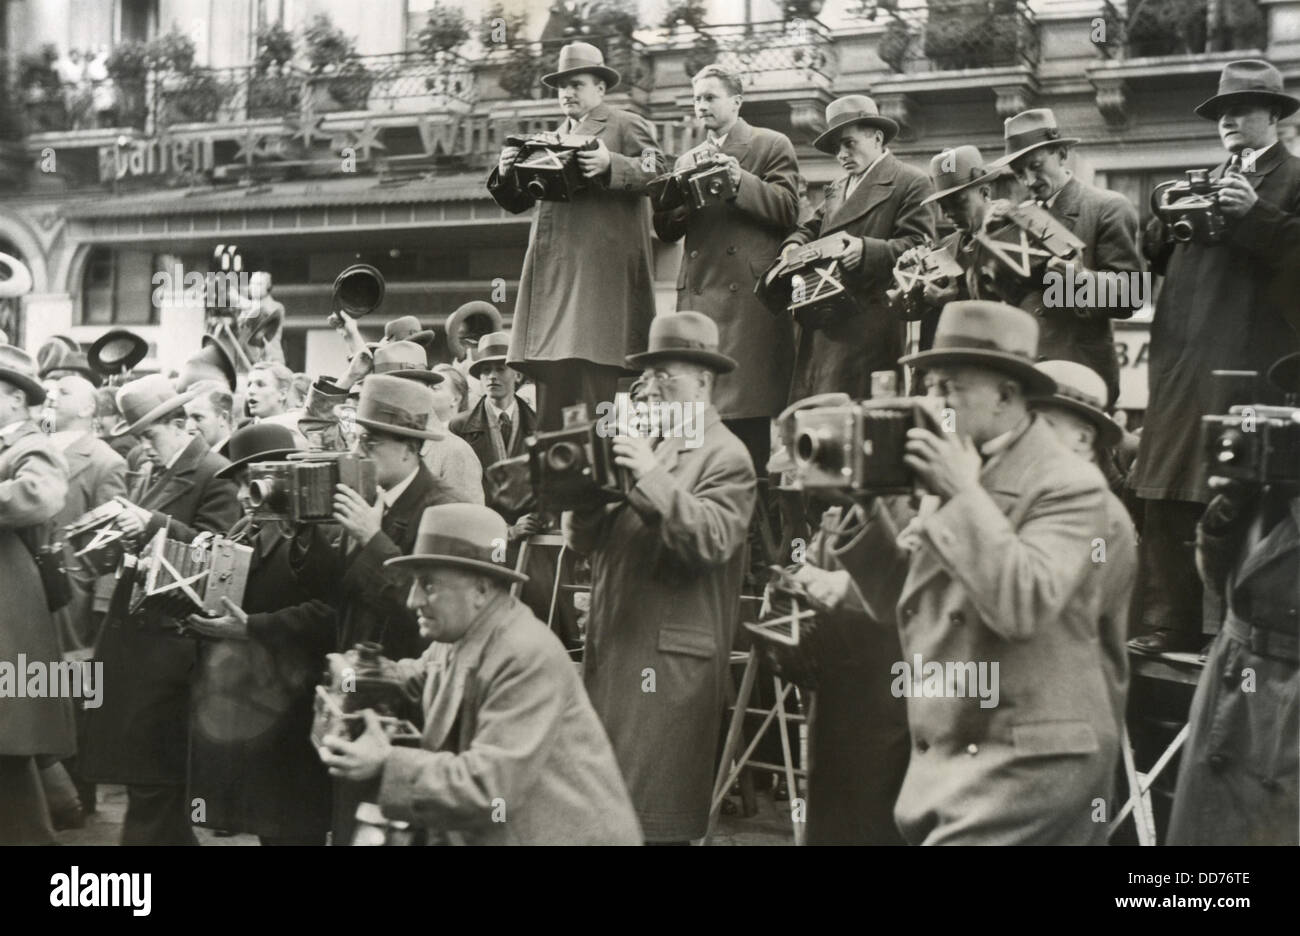 News photographers in Berlin, Germany, 1930s. (BSLOC_2013_8_237) - Stock Image